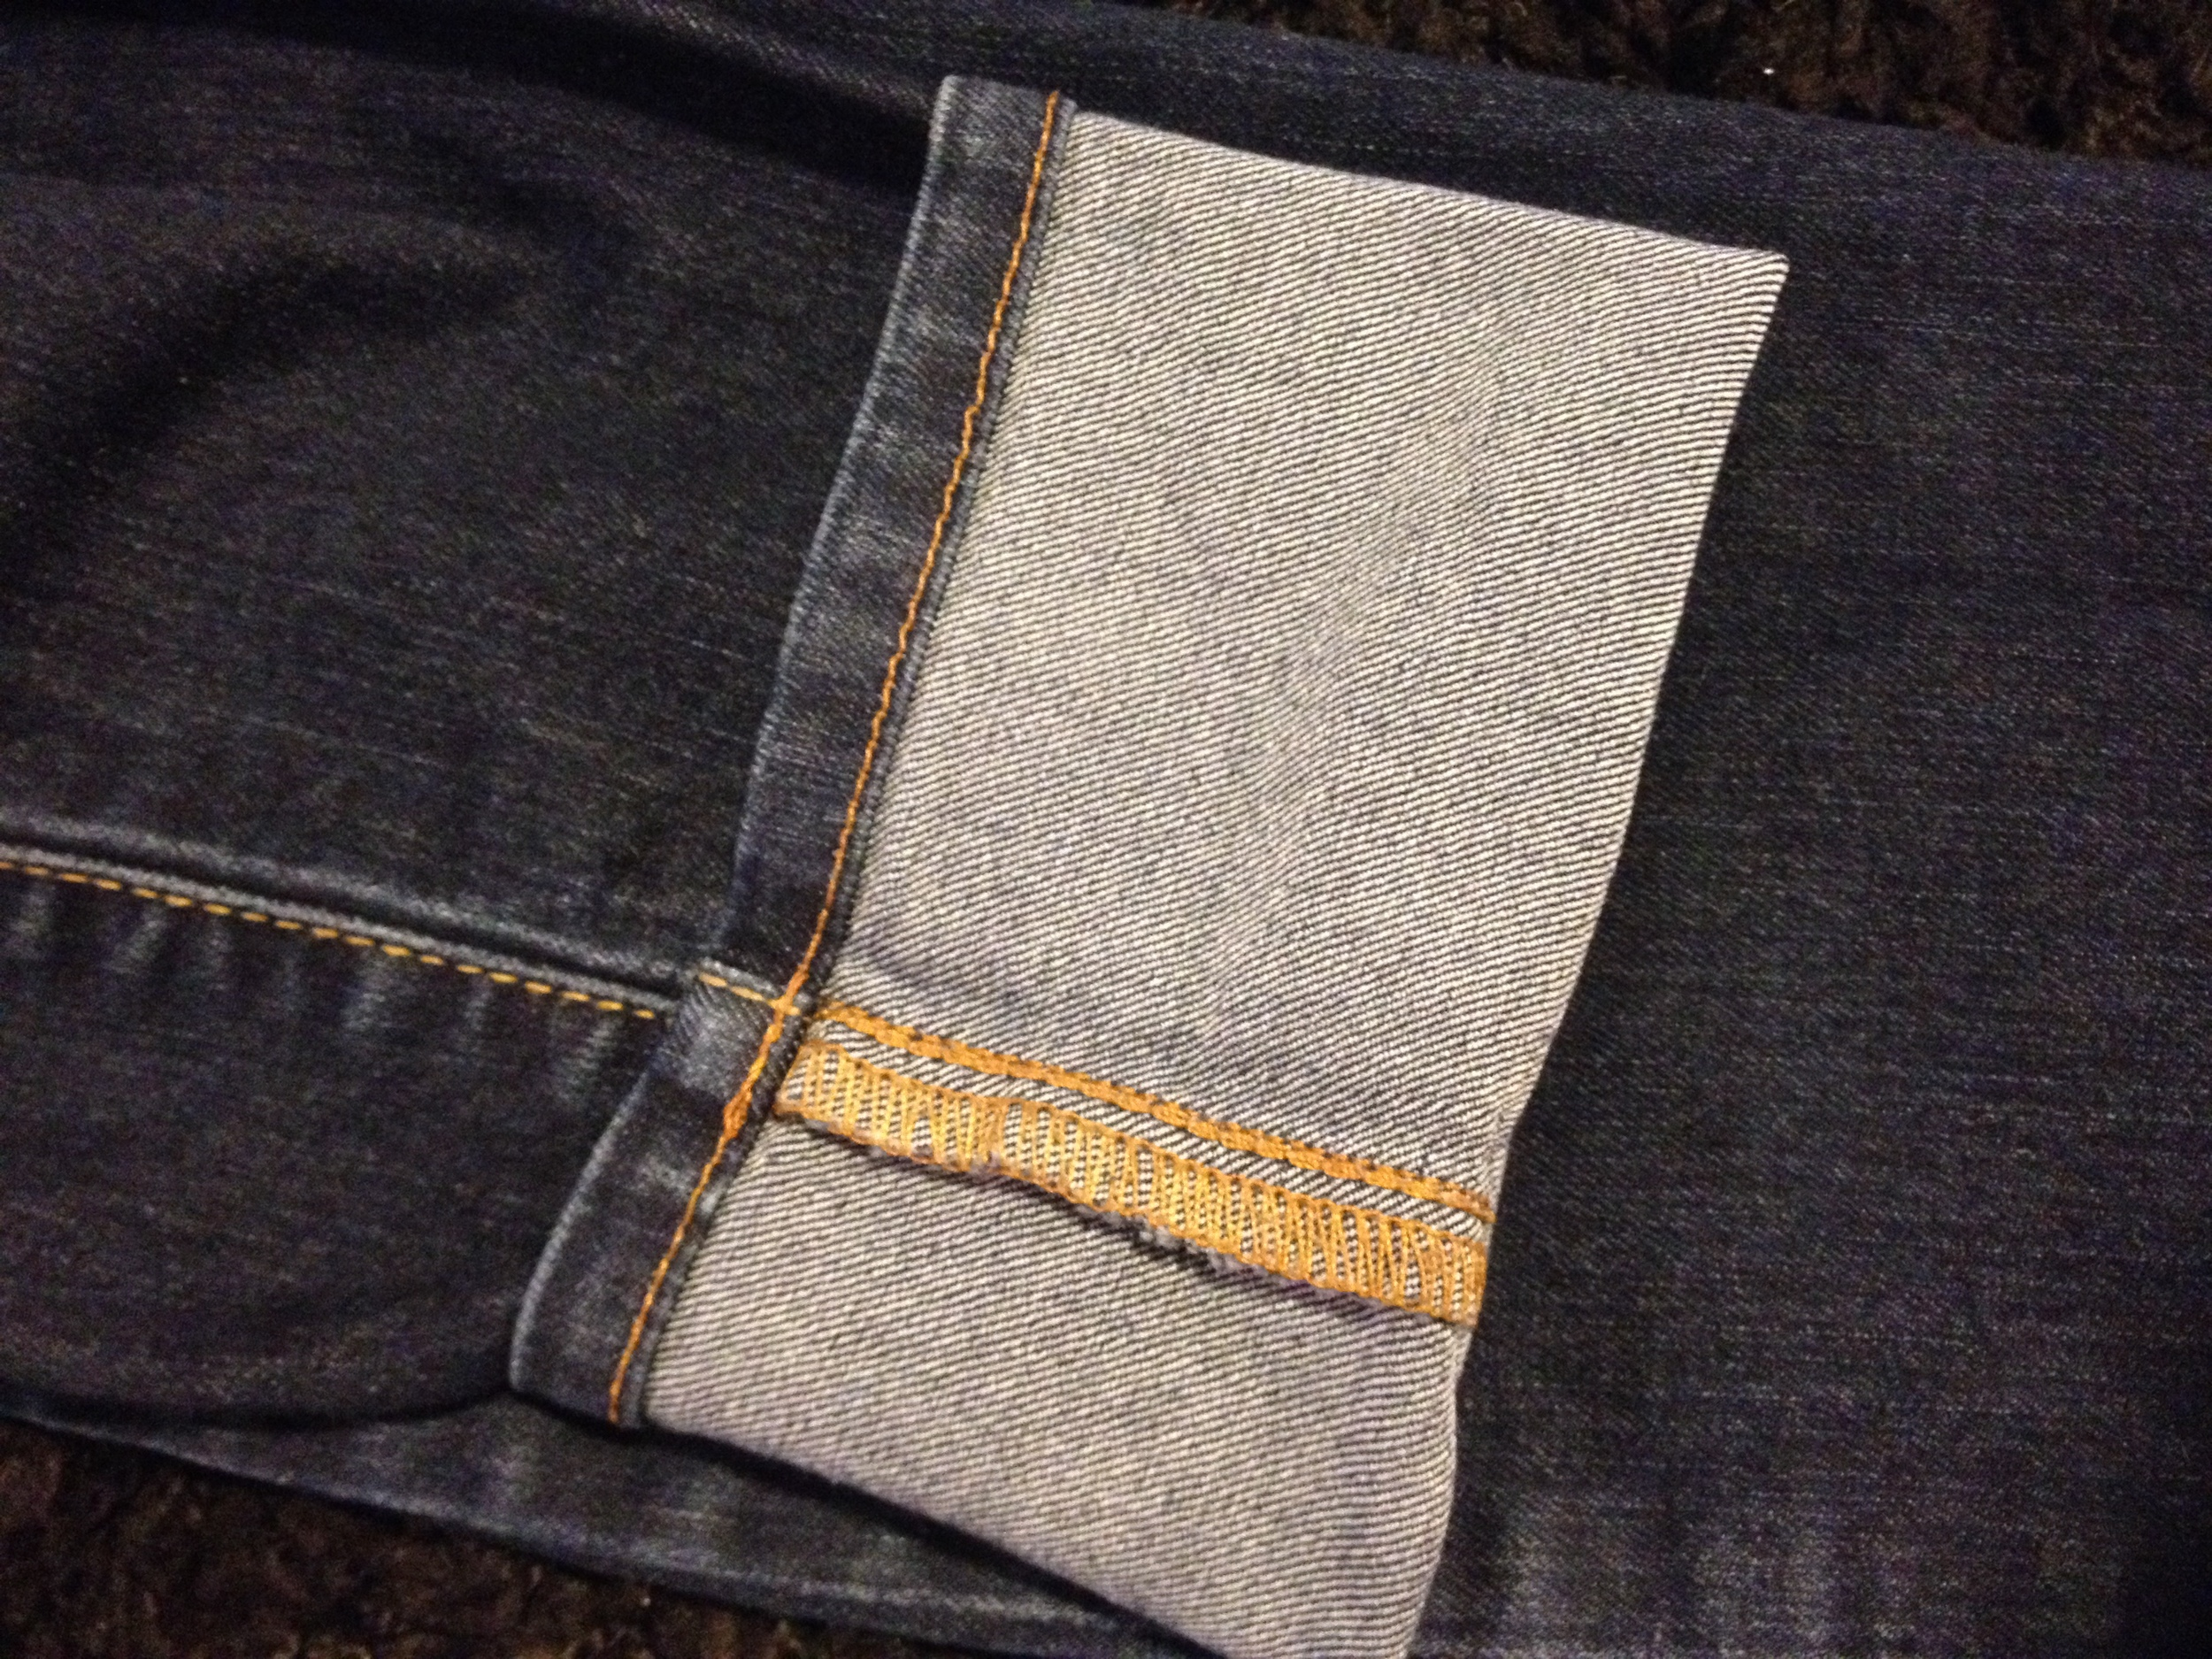 Common stitch on mass produced denim